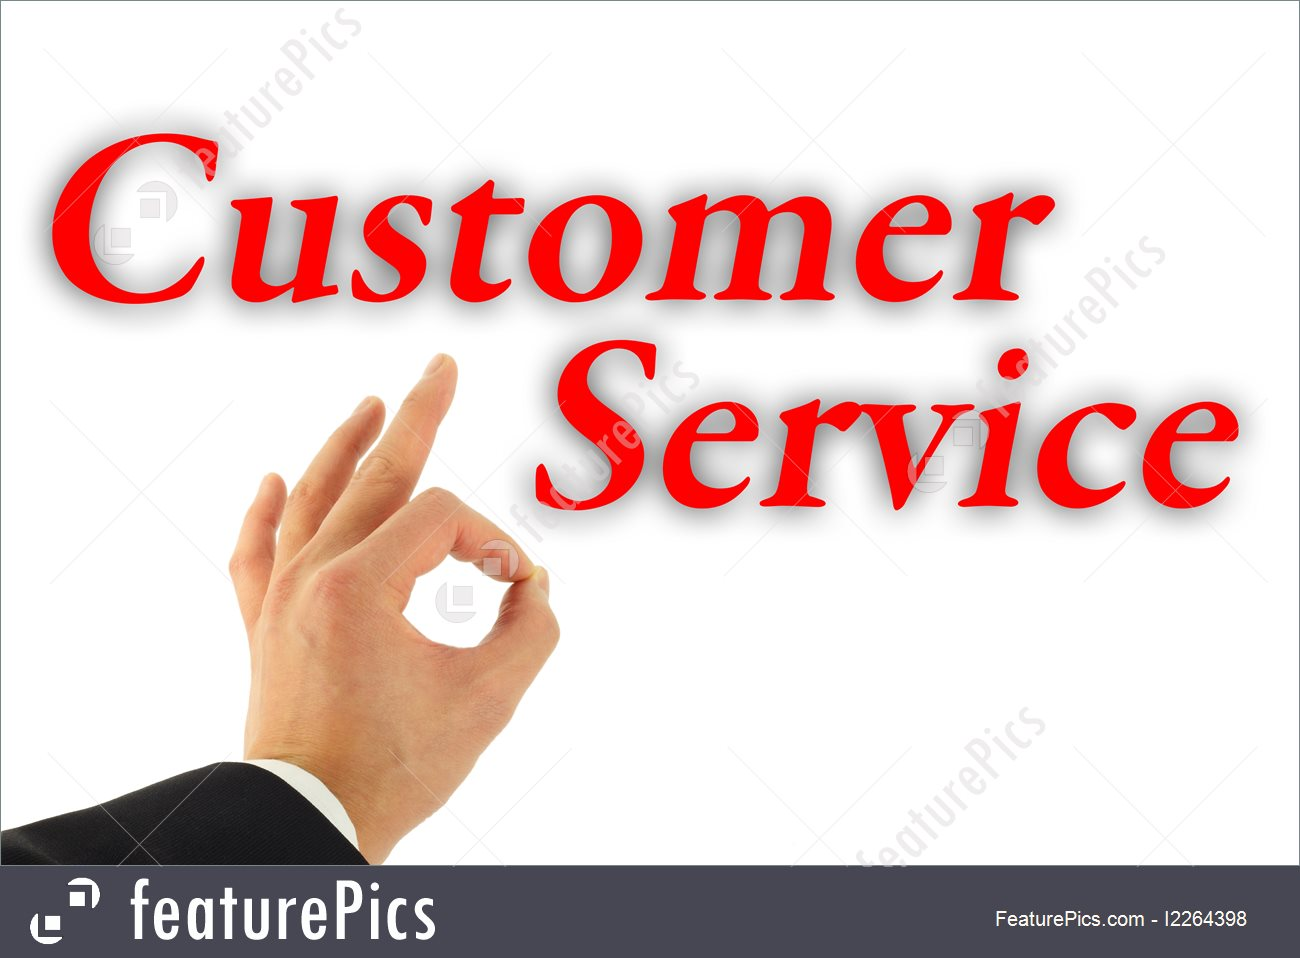 Excellent customer service clipart picture transparent stock Excellent Customer Service Concept Picture. how it should be done ... picture transparent stock